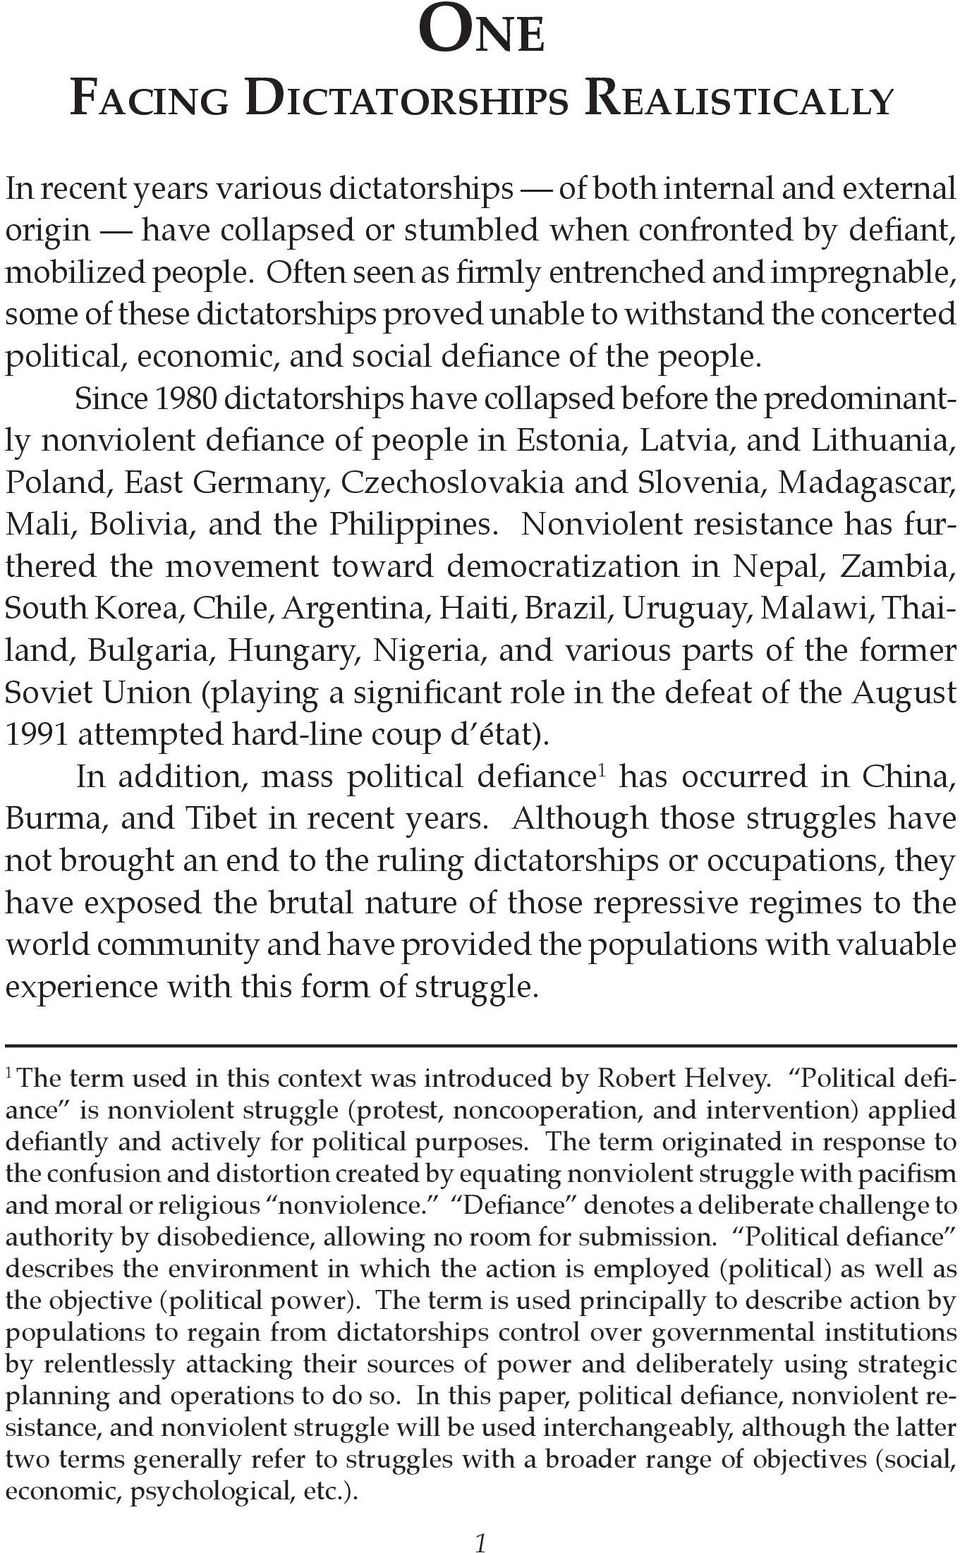 Since 1980 dictatorships have collapsed before the predominantly nonviolent defiance of people in Estonia, Latvia, and Lithuania, Poland, East Germany, Czechoslovakia and Slovenia, Madagascar, Mali,